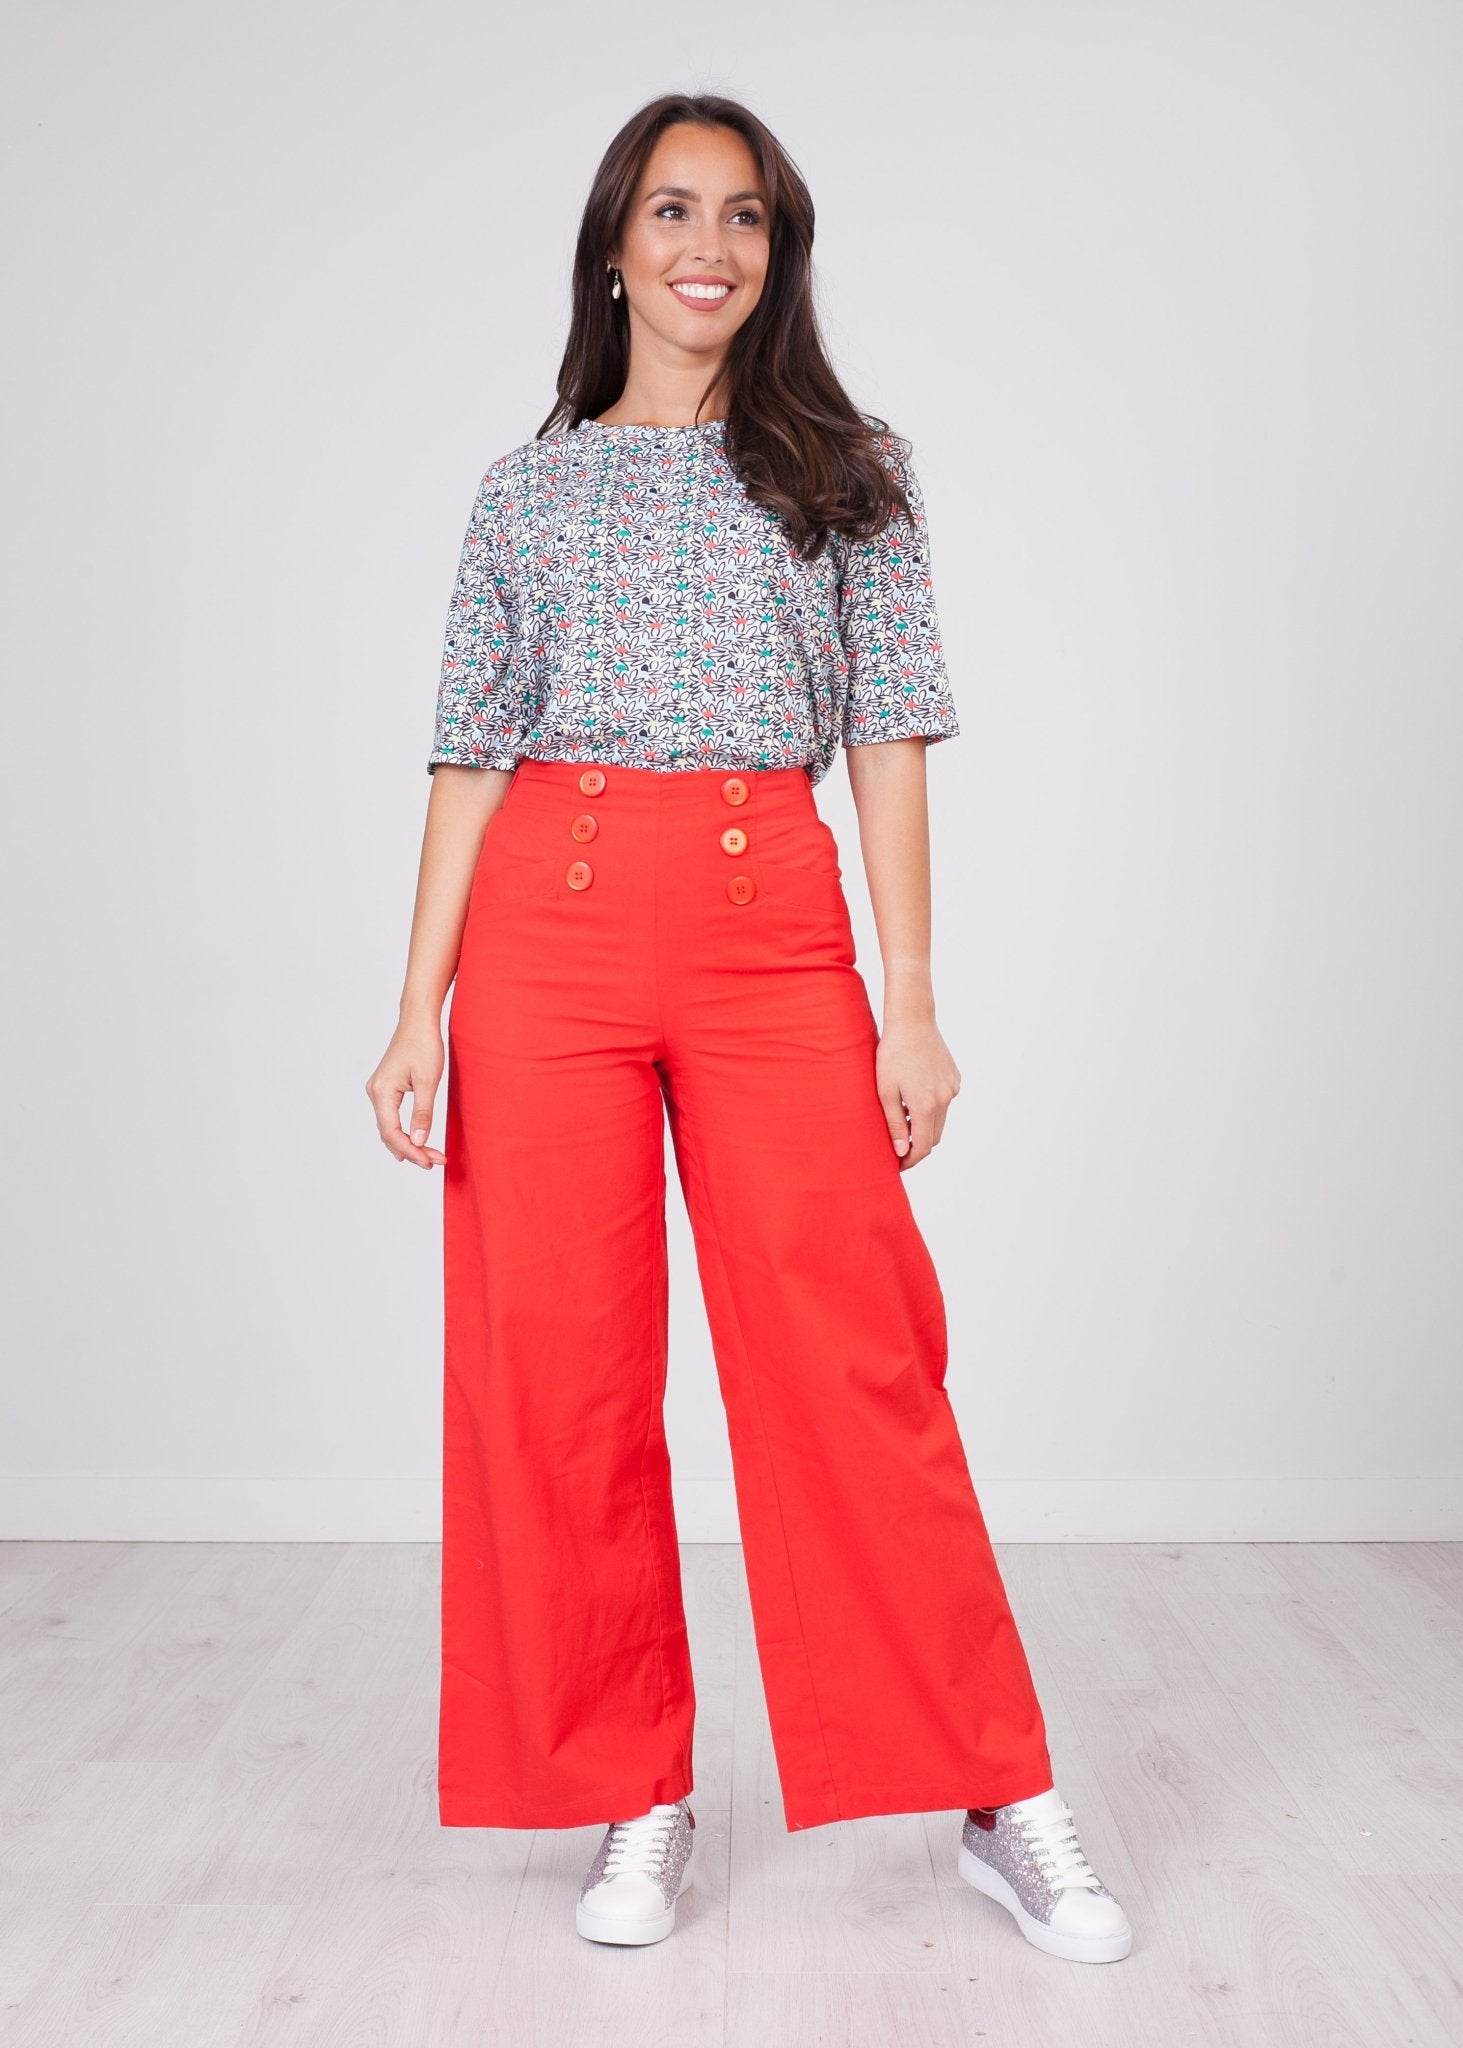 Frankie Red Culottes - The Walk in Wardrobe